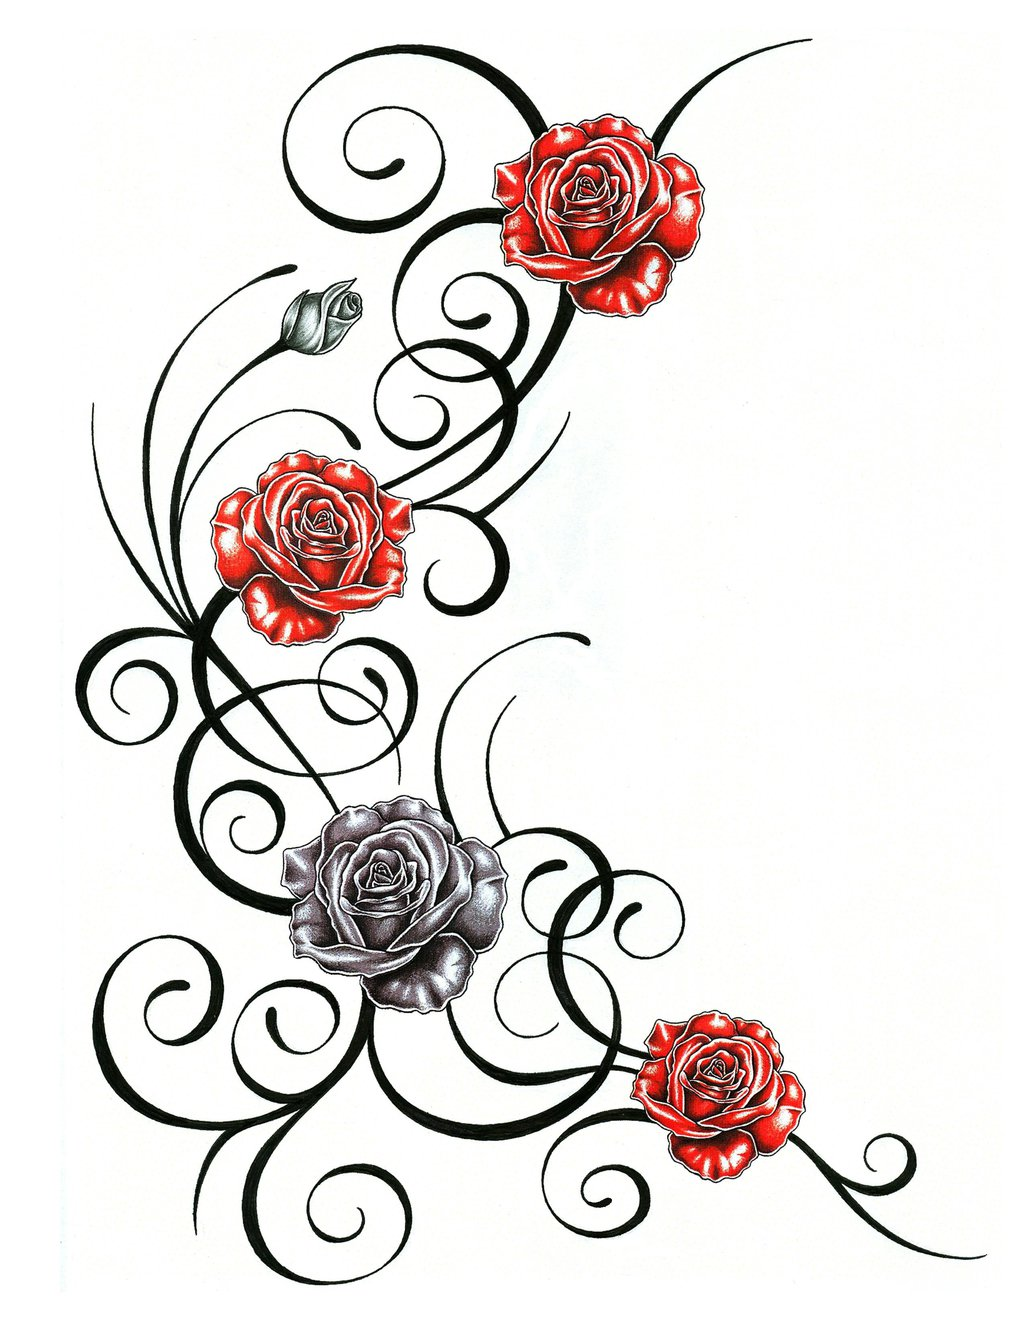 d174fcec1 Rose Tattoo Drawing Tumblr at GetDrawings.com | Free for personal ...